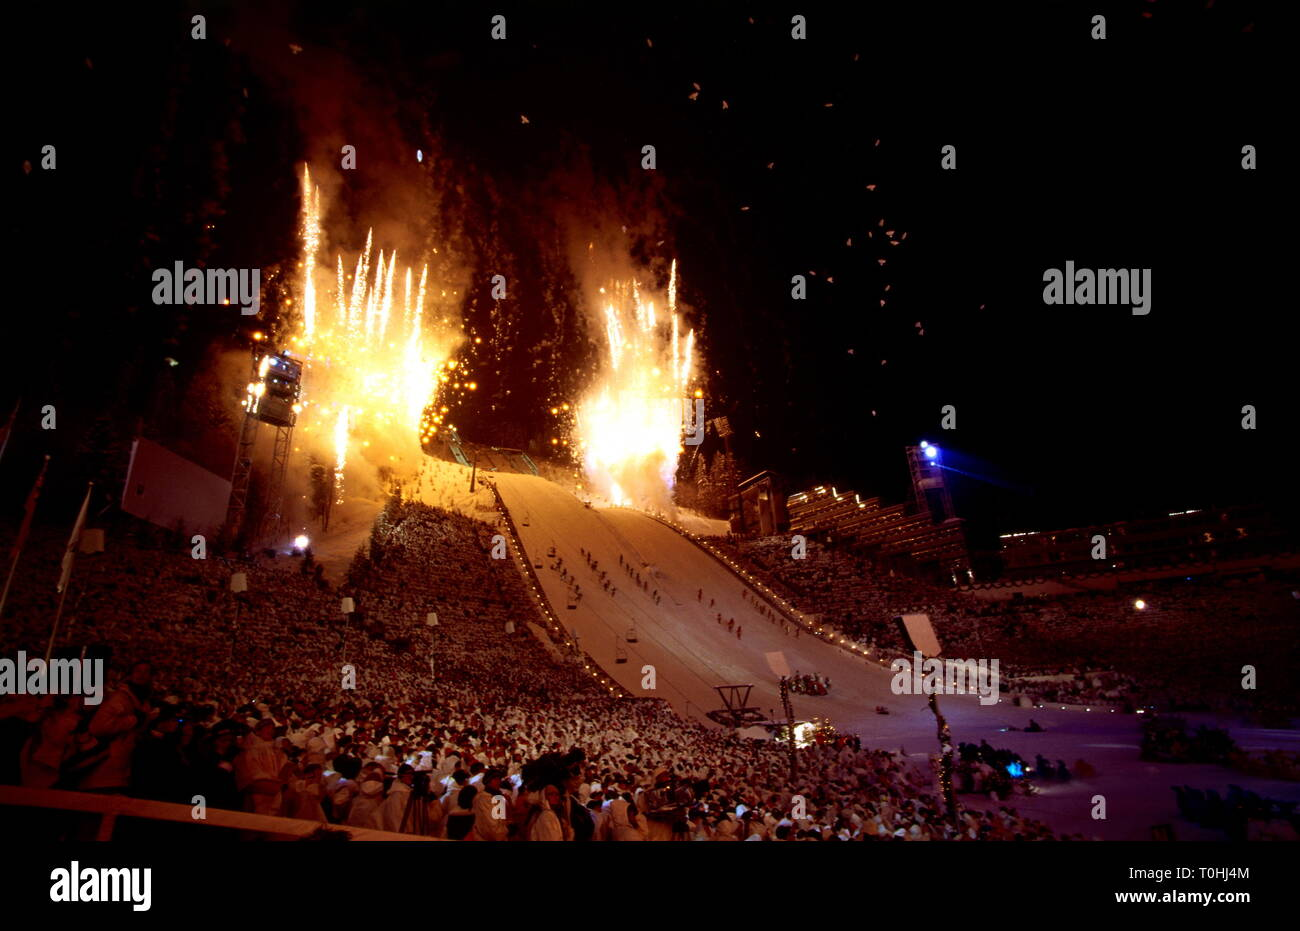 sports, XVII. Olympic winter games, Lillehammer, opening ceremony, 1994, Additional-Rights-Clearance-Info-Not-Available Stock Photo